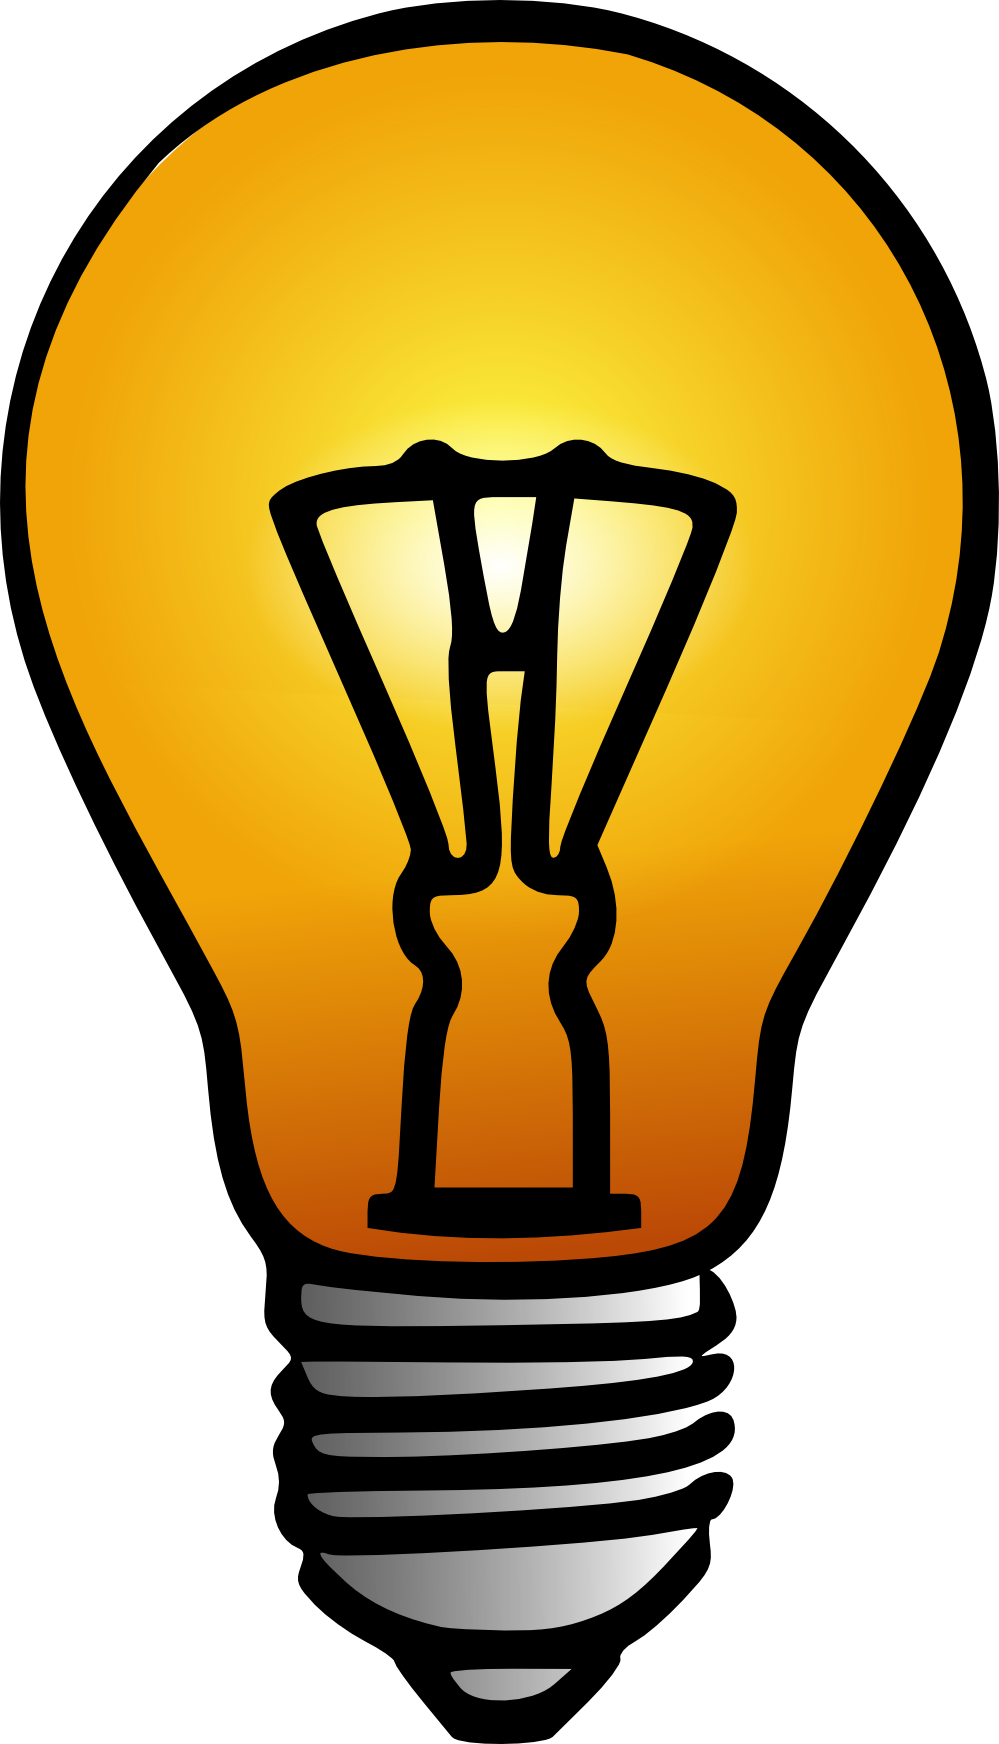 Idea clipart electric bulb #14